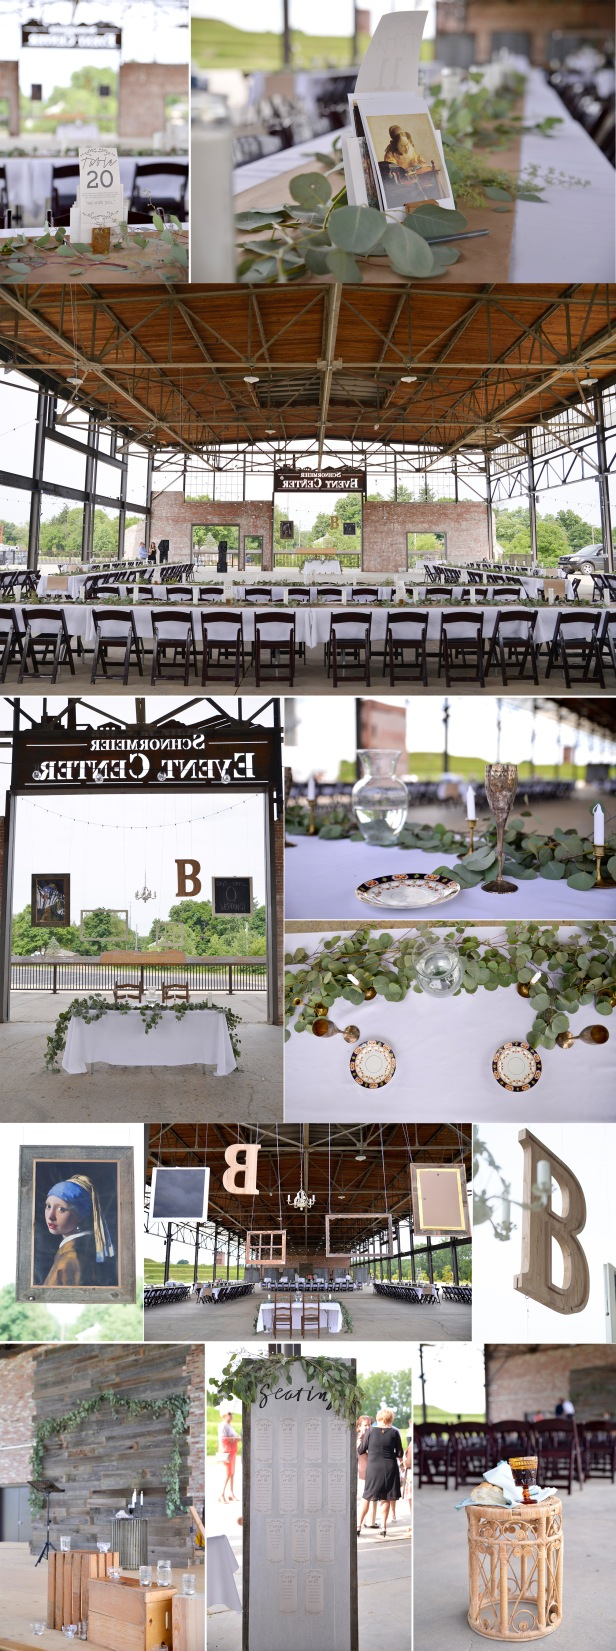 7-wedding in event center foundation park mt vernon ohio